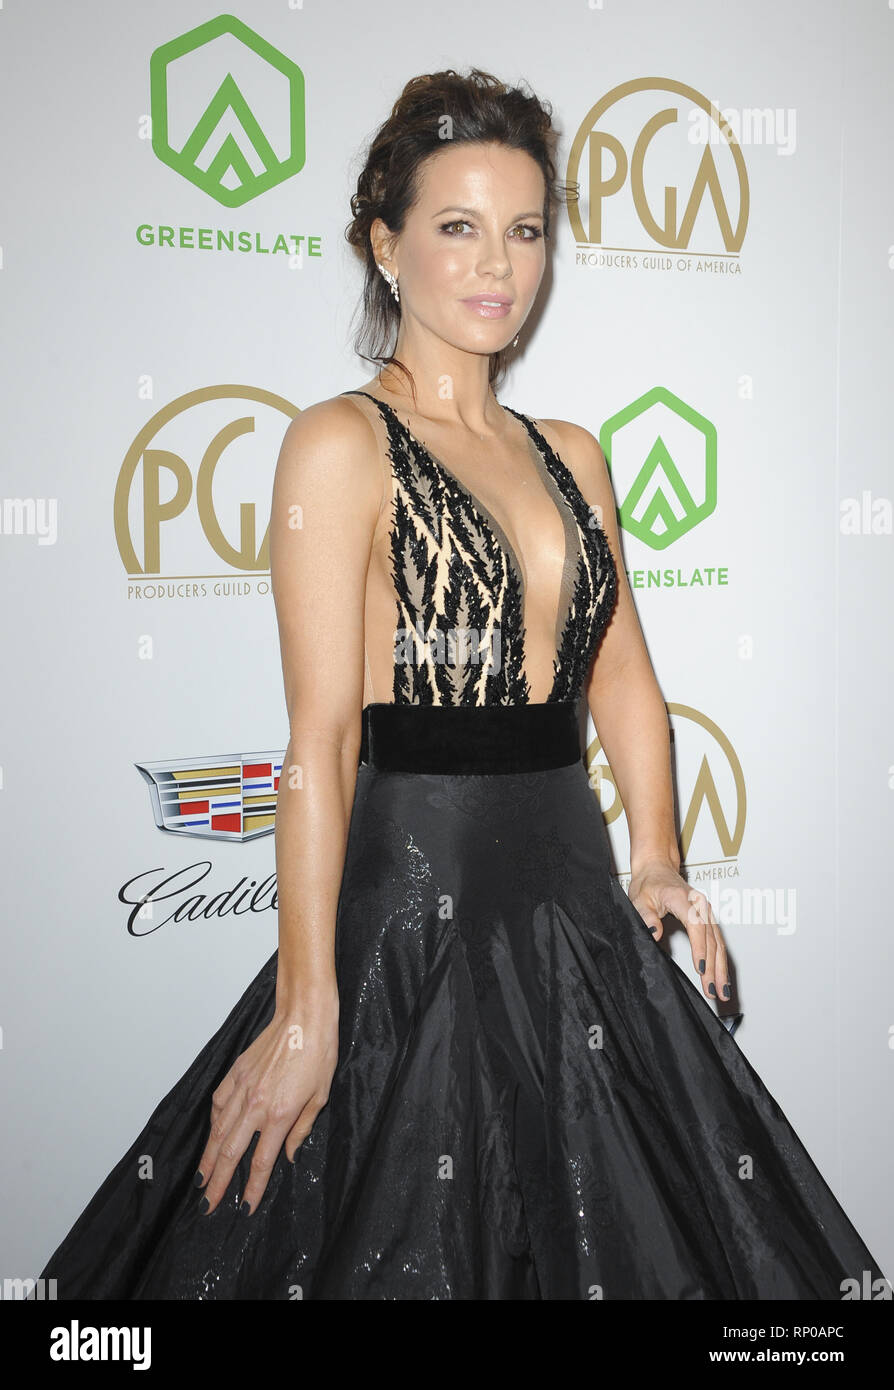 The 2019 PGA Awards Featuring: Kate Beckinsale Where: Los